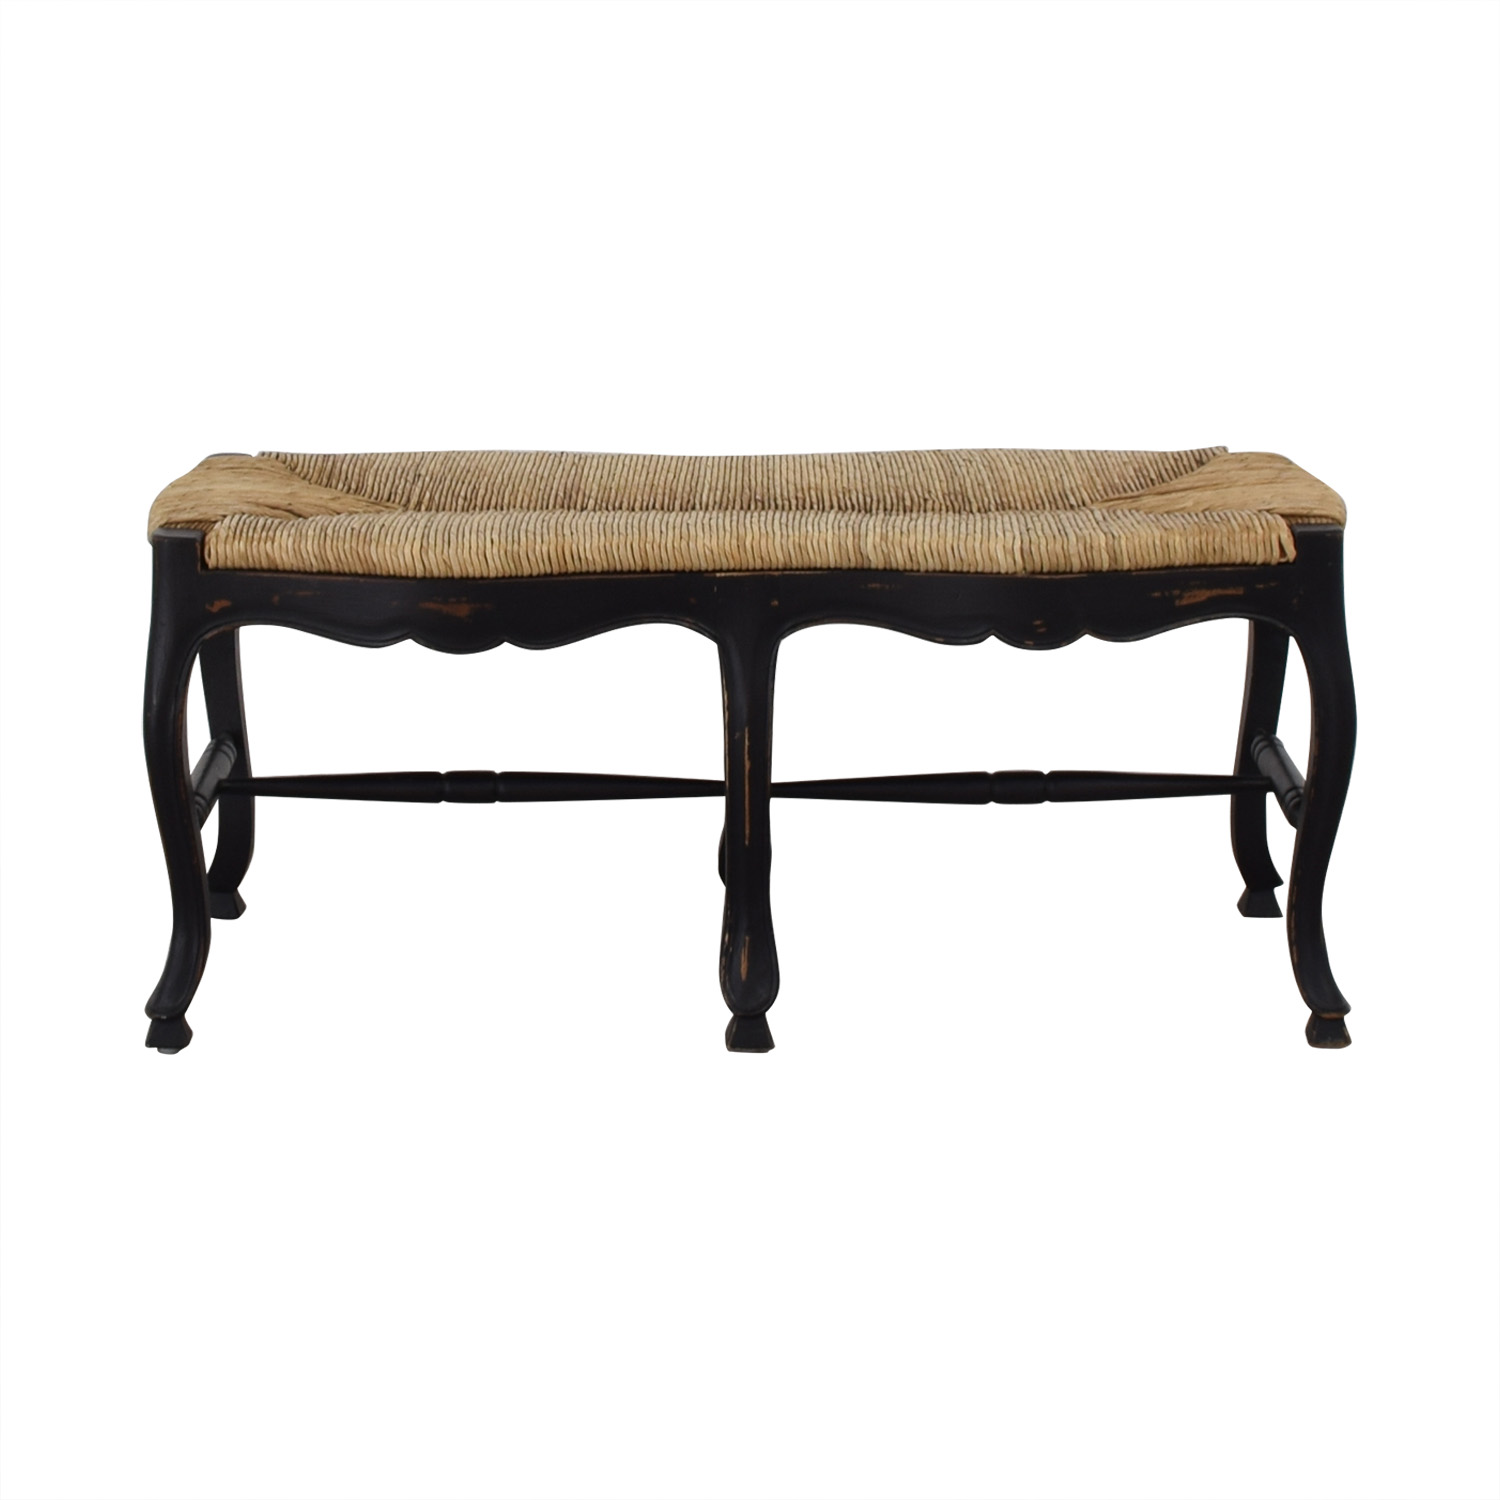 buy Pottery Barn Wicker Top Bench Pottery Barn Chairs